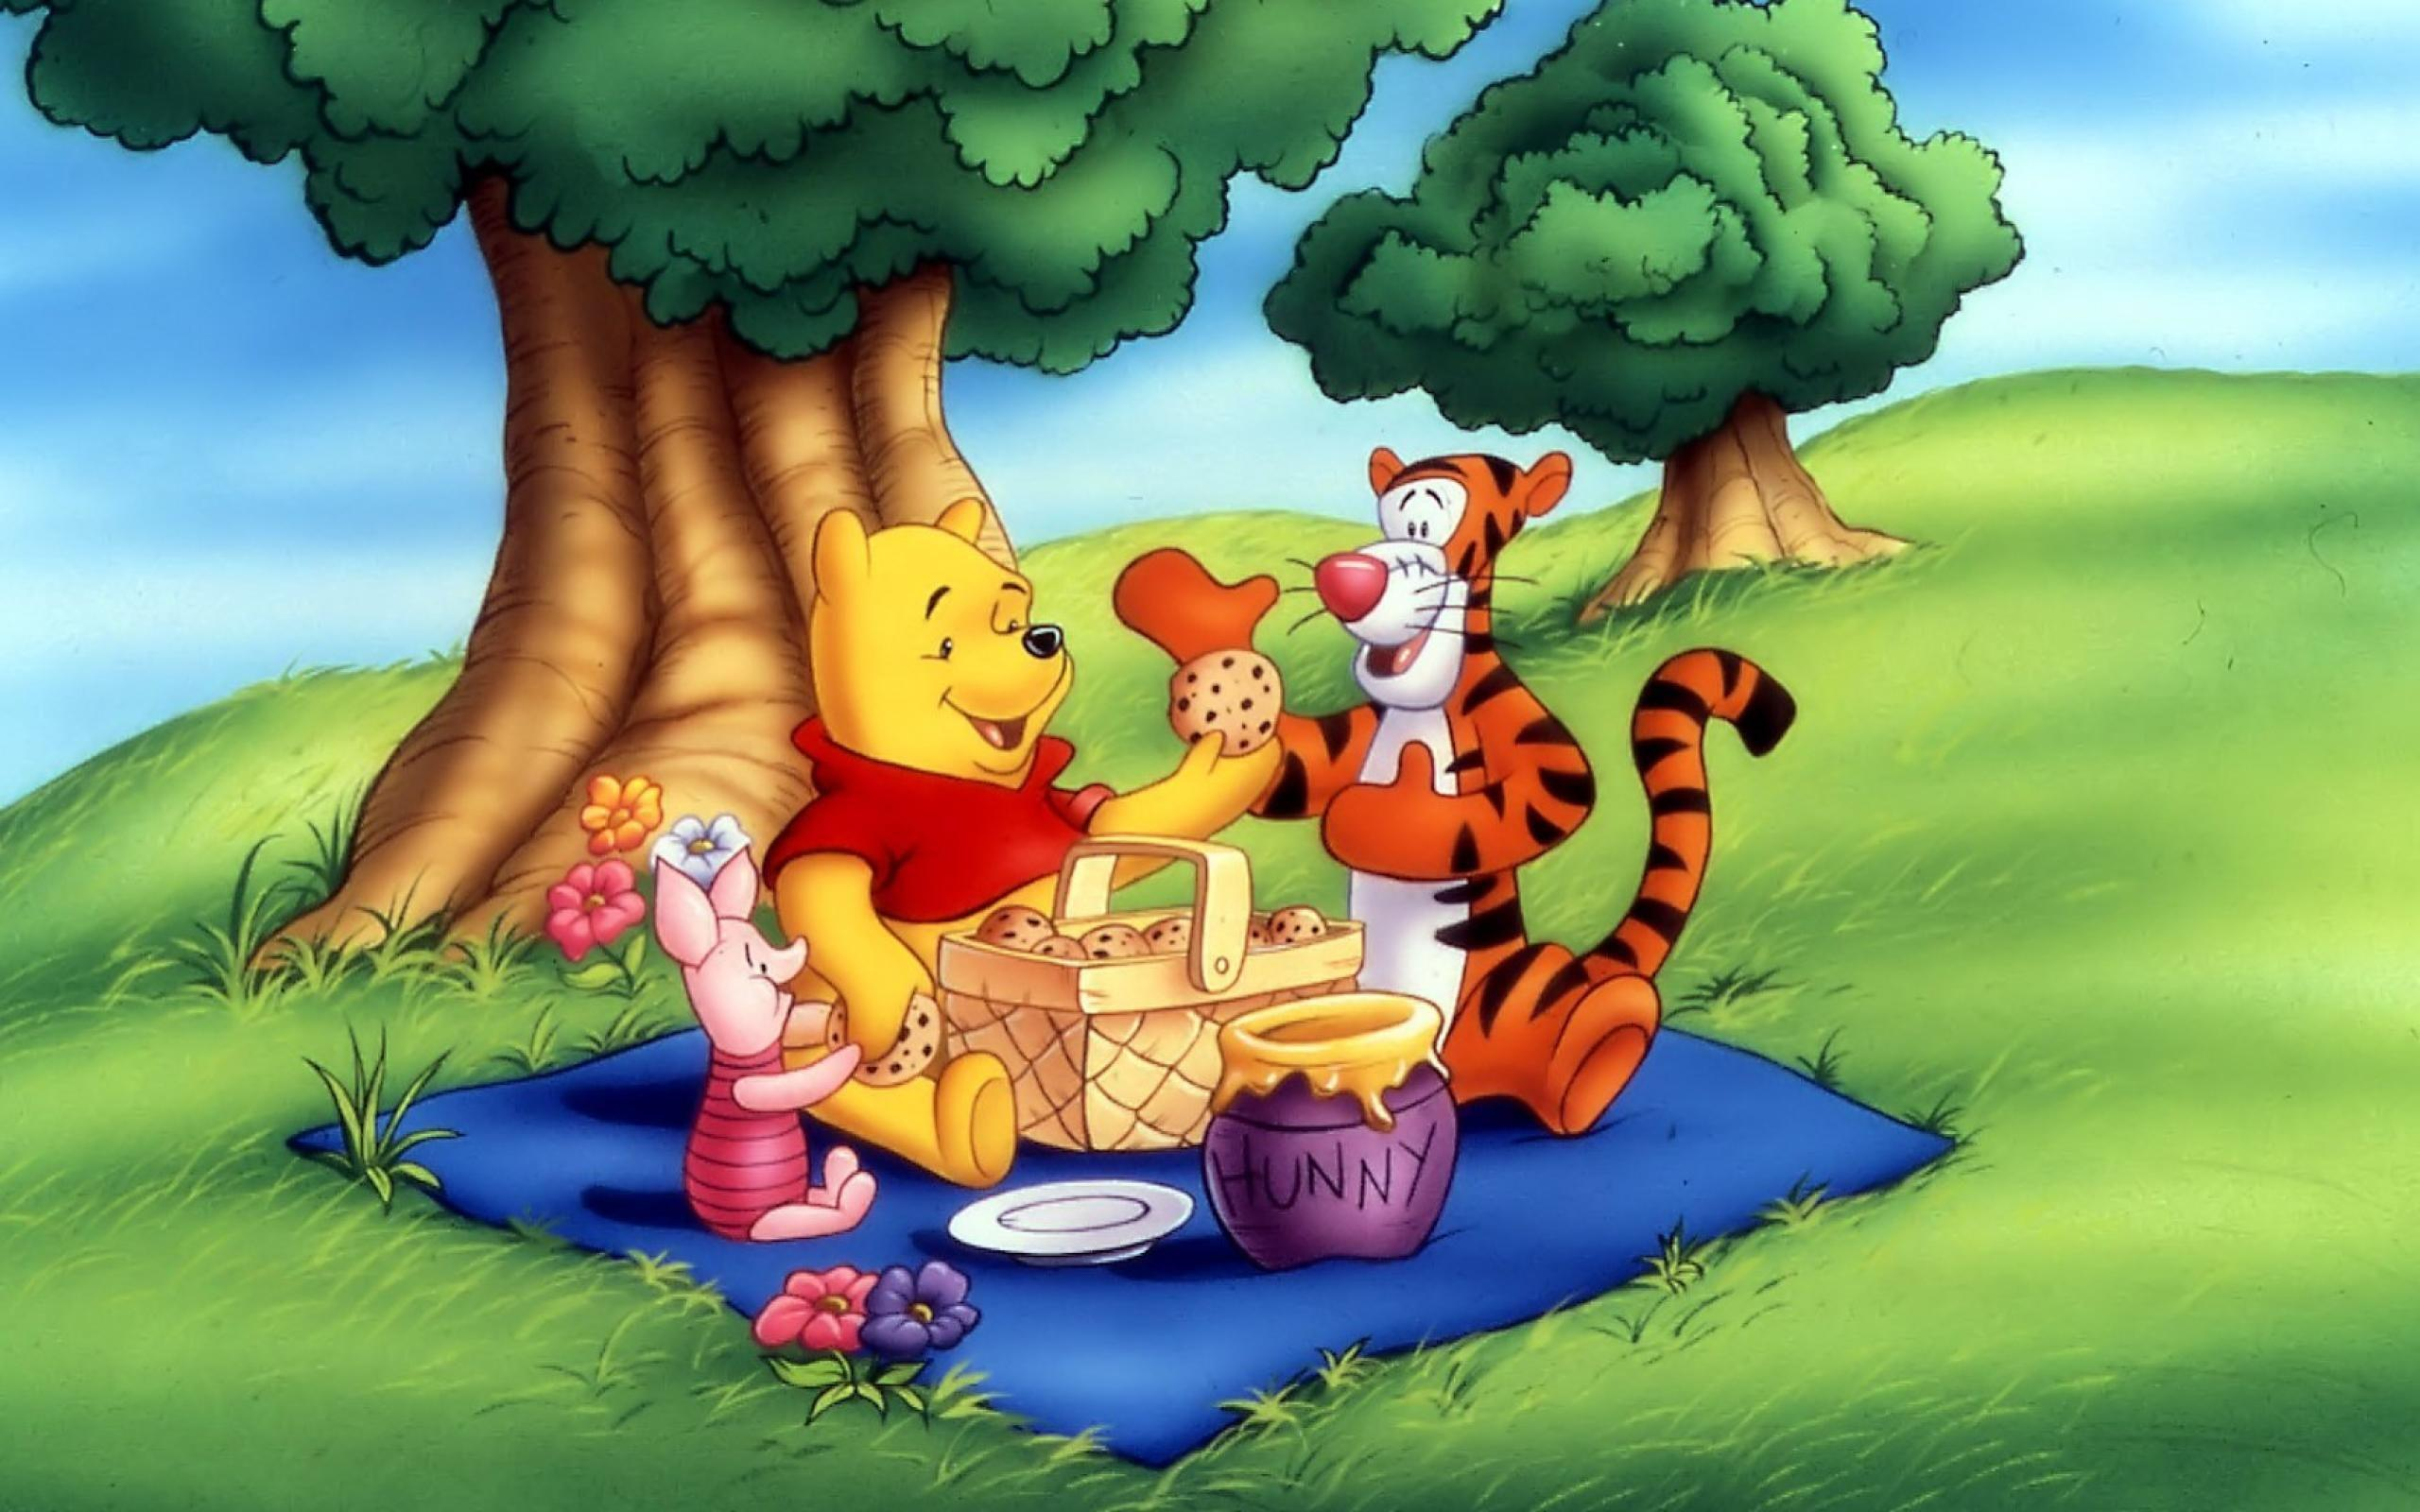 winnie the pooh Computer Wallpapers, Desktop Backgrounds ... Quotes Backgrounds For Facebook